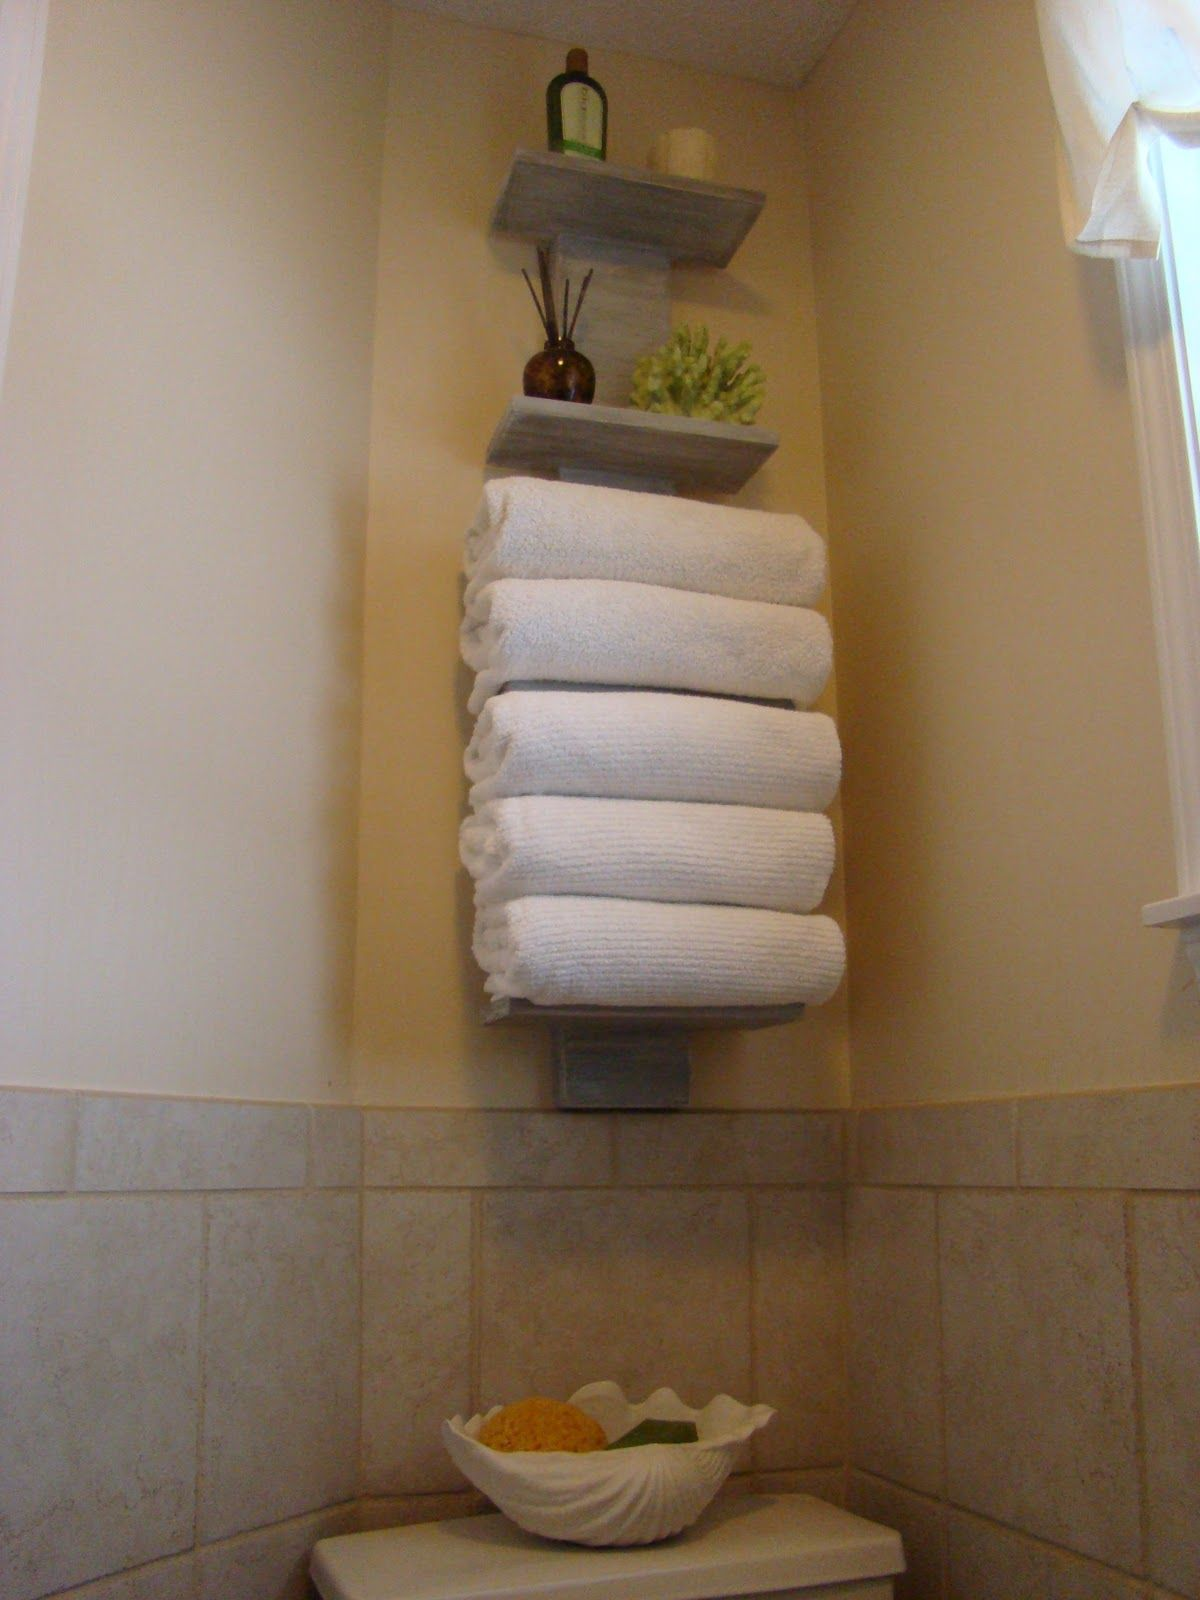 Inspiringsmallbathroomtowelstorageideas 1200×1600 Fascinating Storage For Towels In Small Bathroom Design Ideas